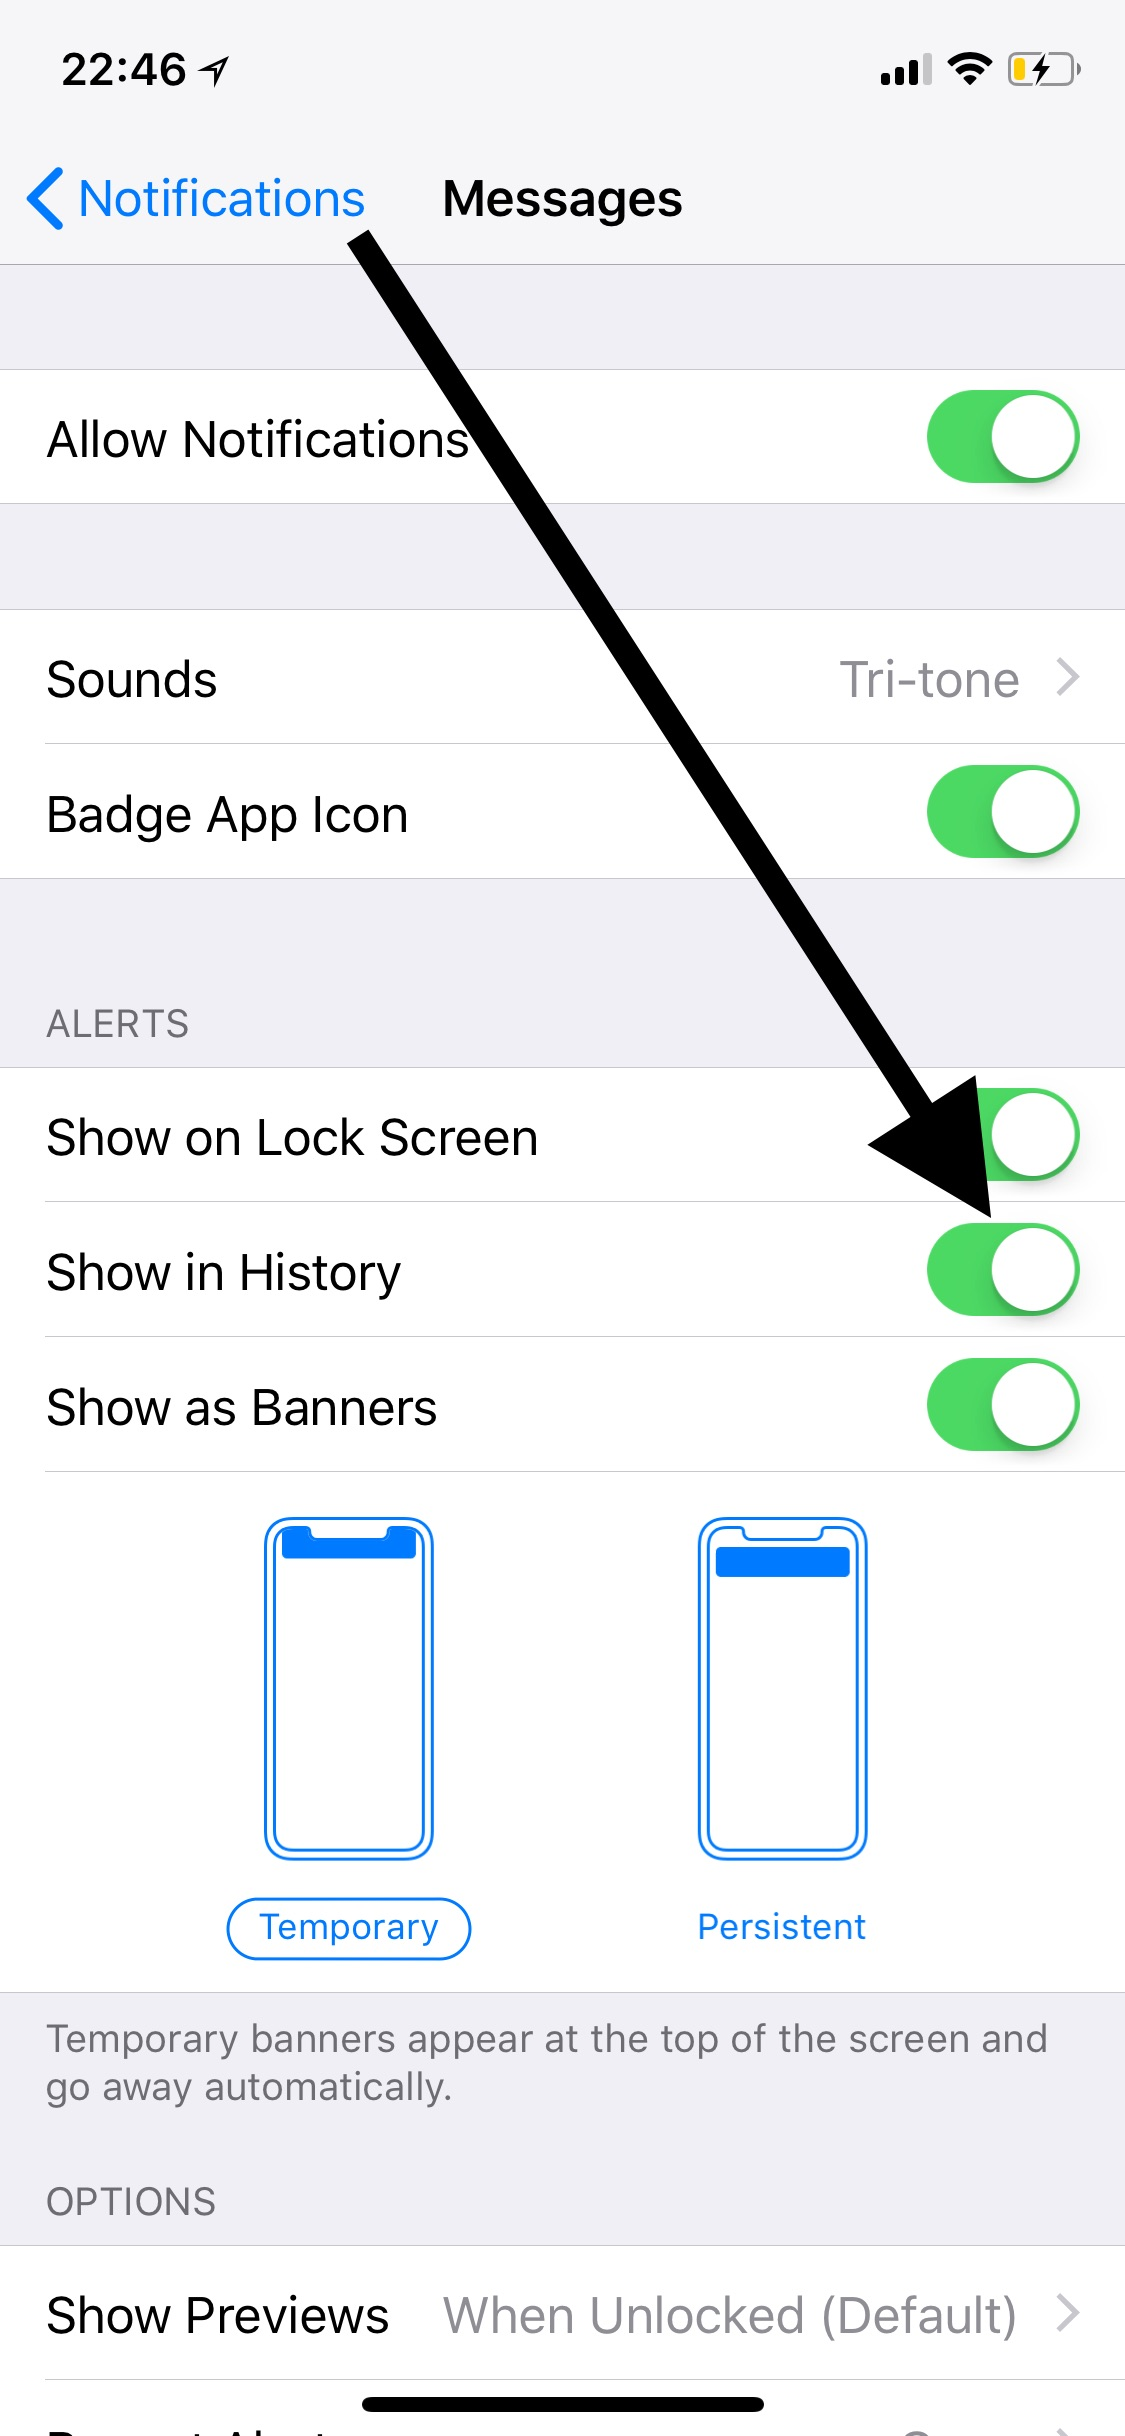 Notifications Disappearing From Lock Screen? Fix - macReports